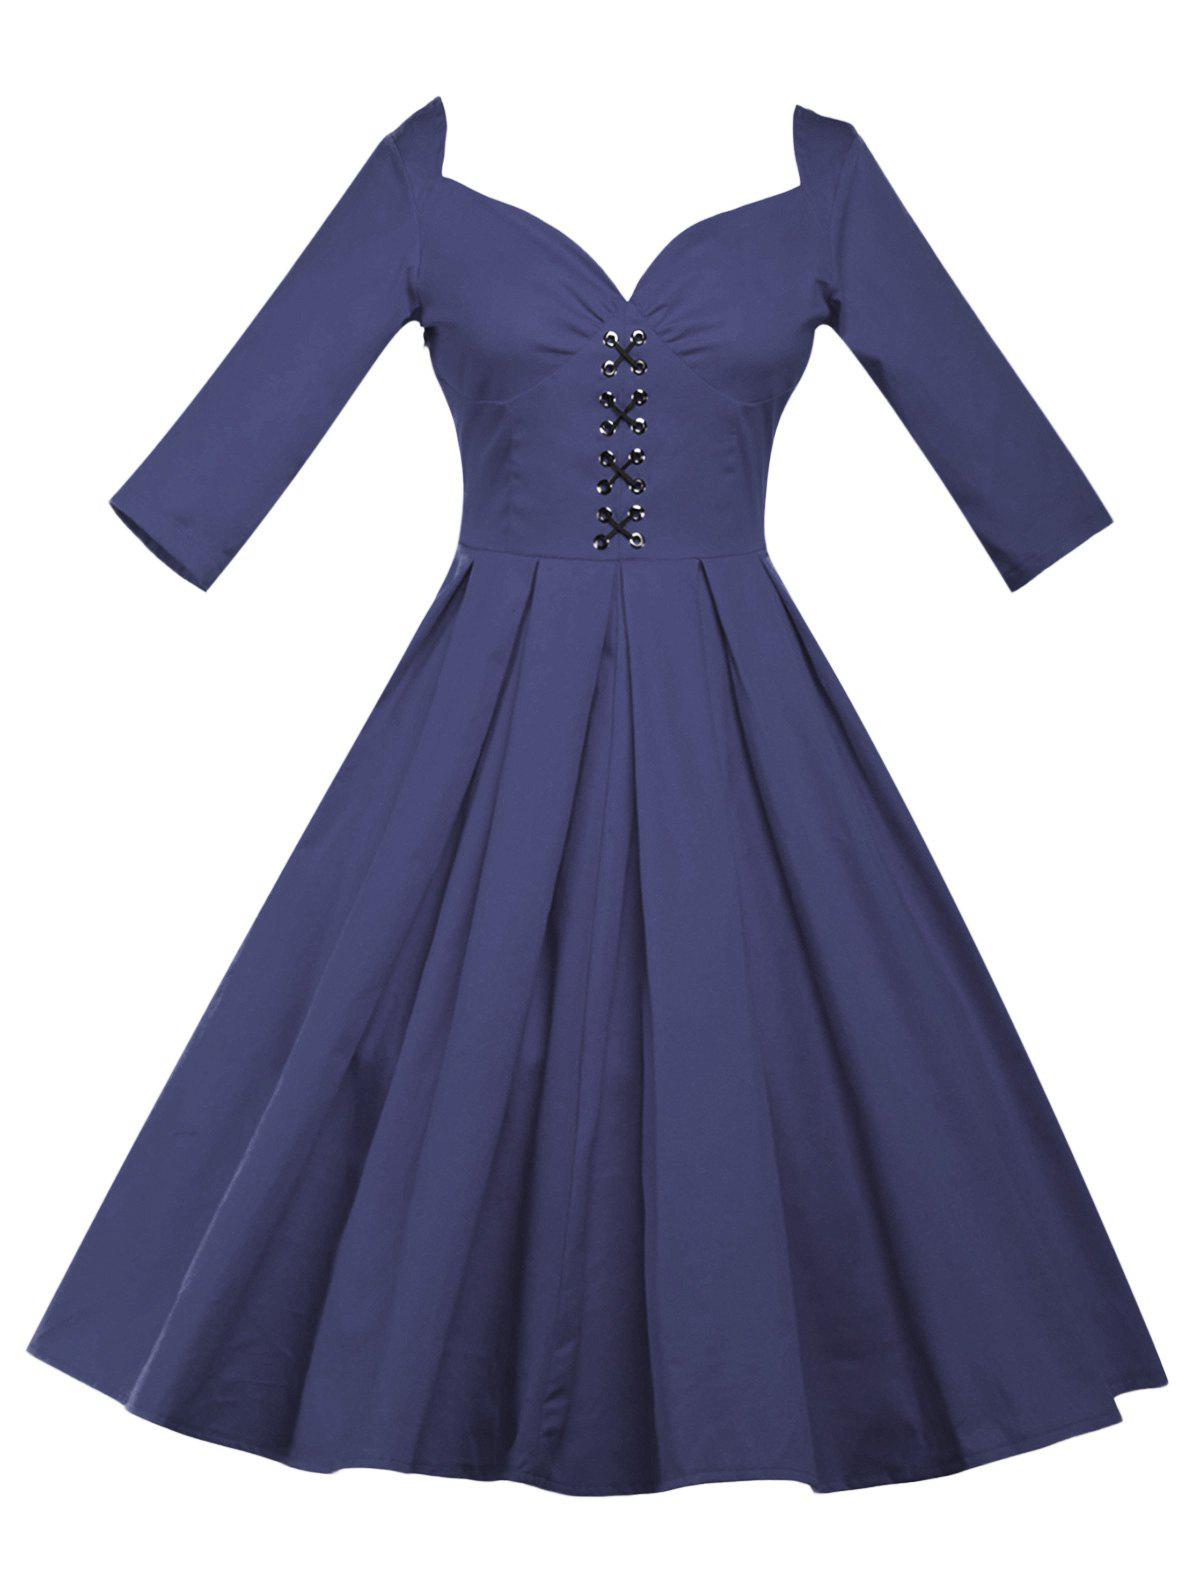 Lace Up Bowknot Vintage Swing Dress - PURPLISH BLUE XL